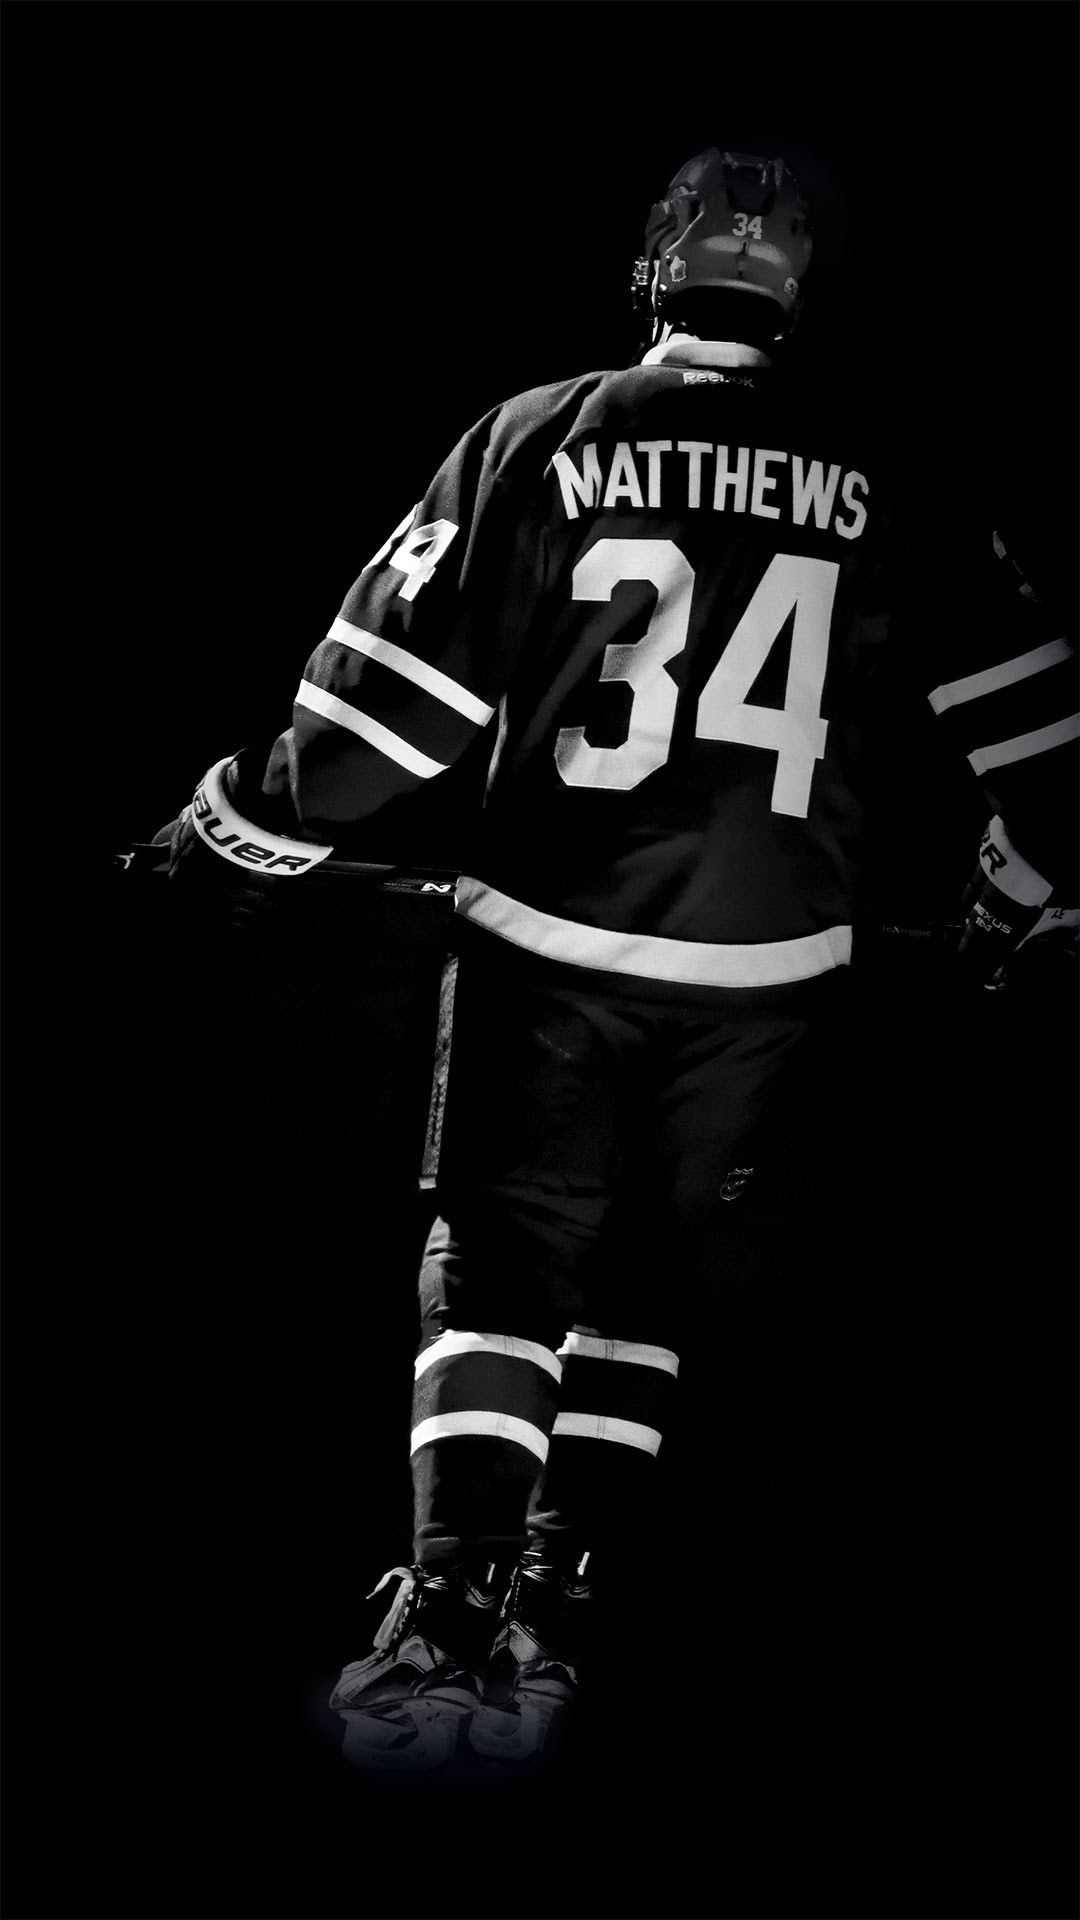 Auston Matthews Toronto Maple Leafs Wallpaper Amazing Player And A Great Guy Can T Believe M Maple Leafs Wallpaper Toronto Maple Leafs Wallpaper Nhl Wallpaper